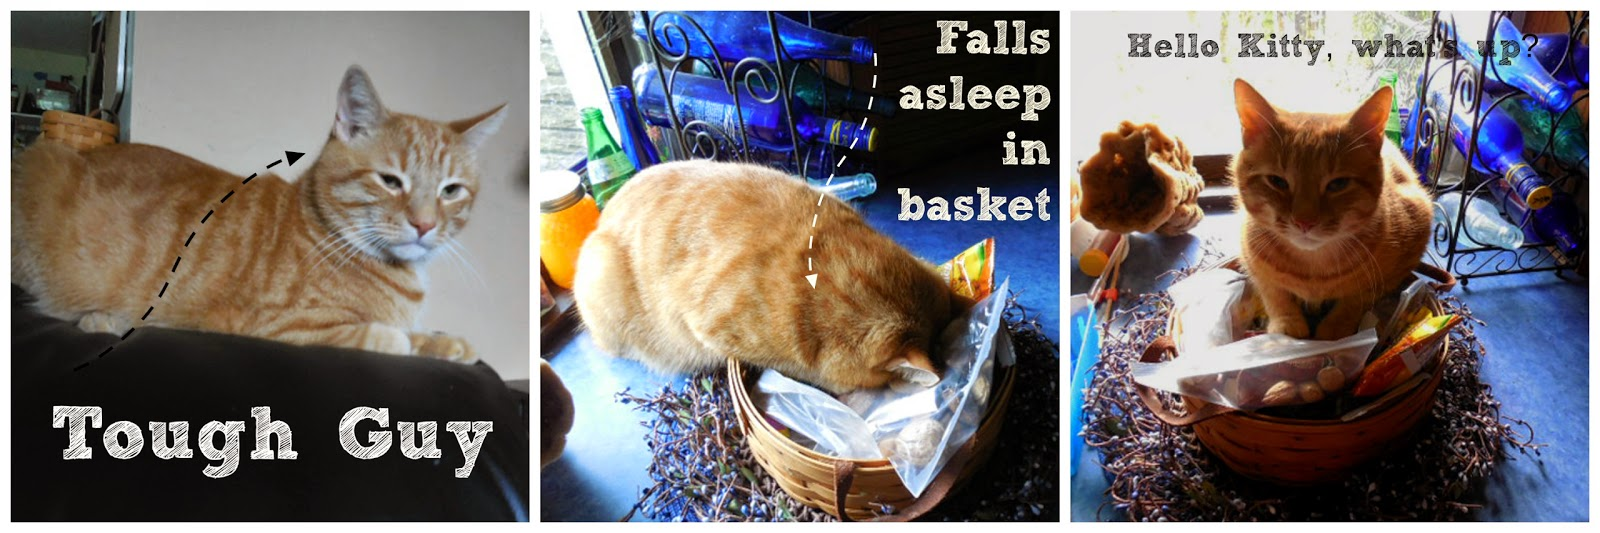 Cat Sleeping in Basket: Caturday Pictures